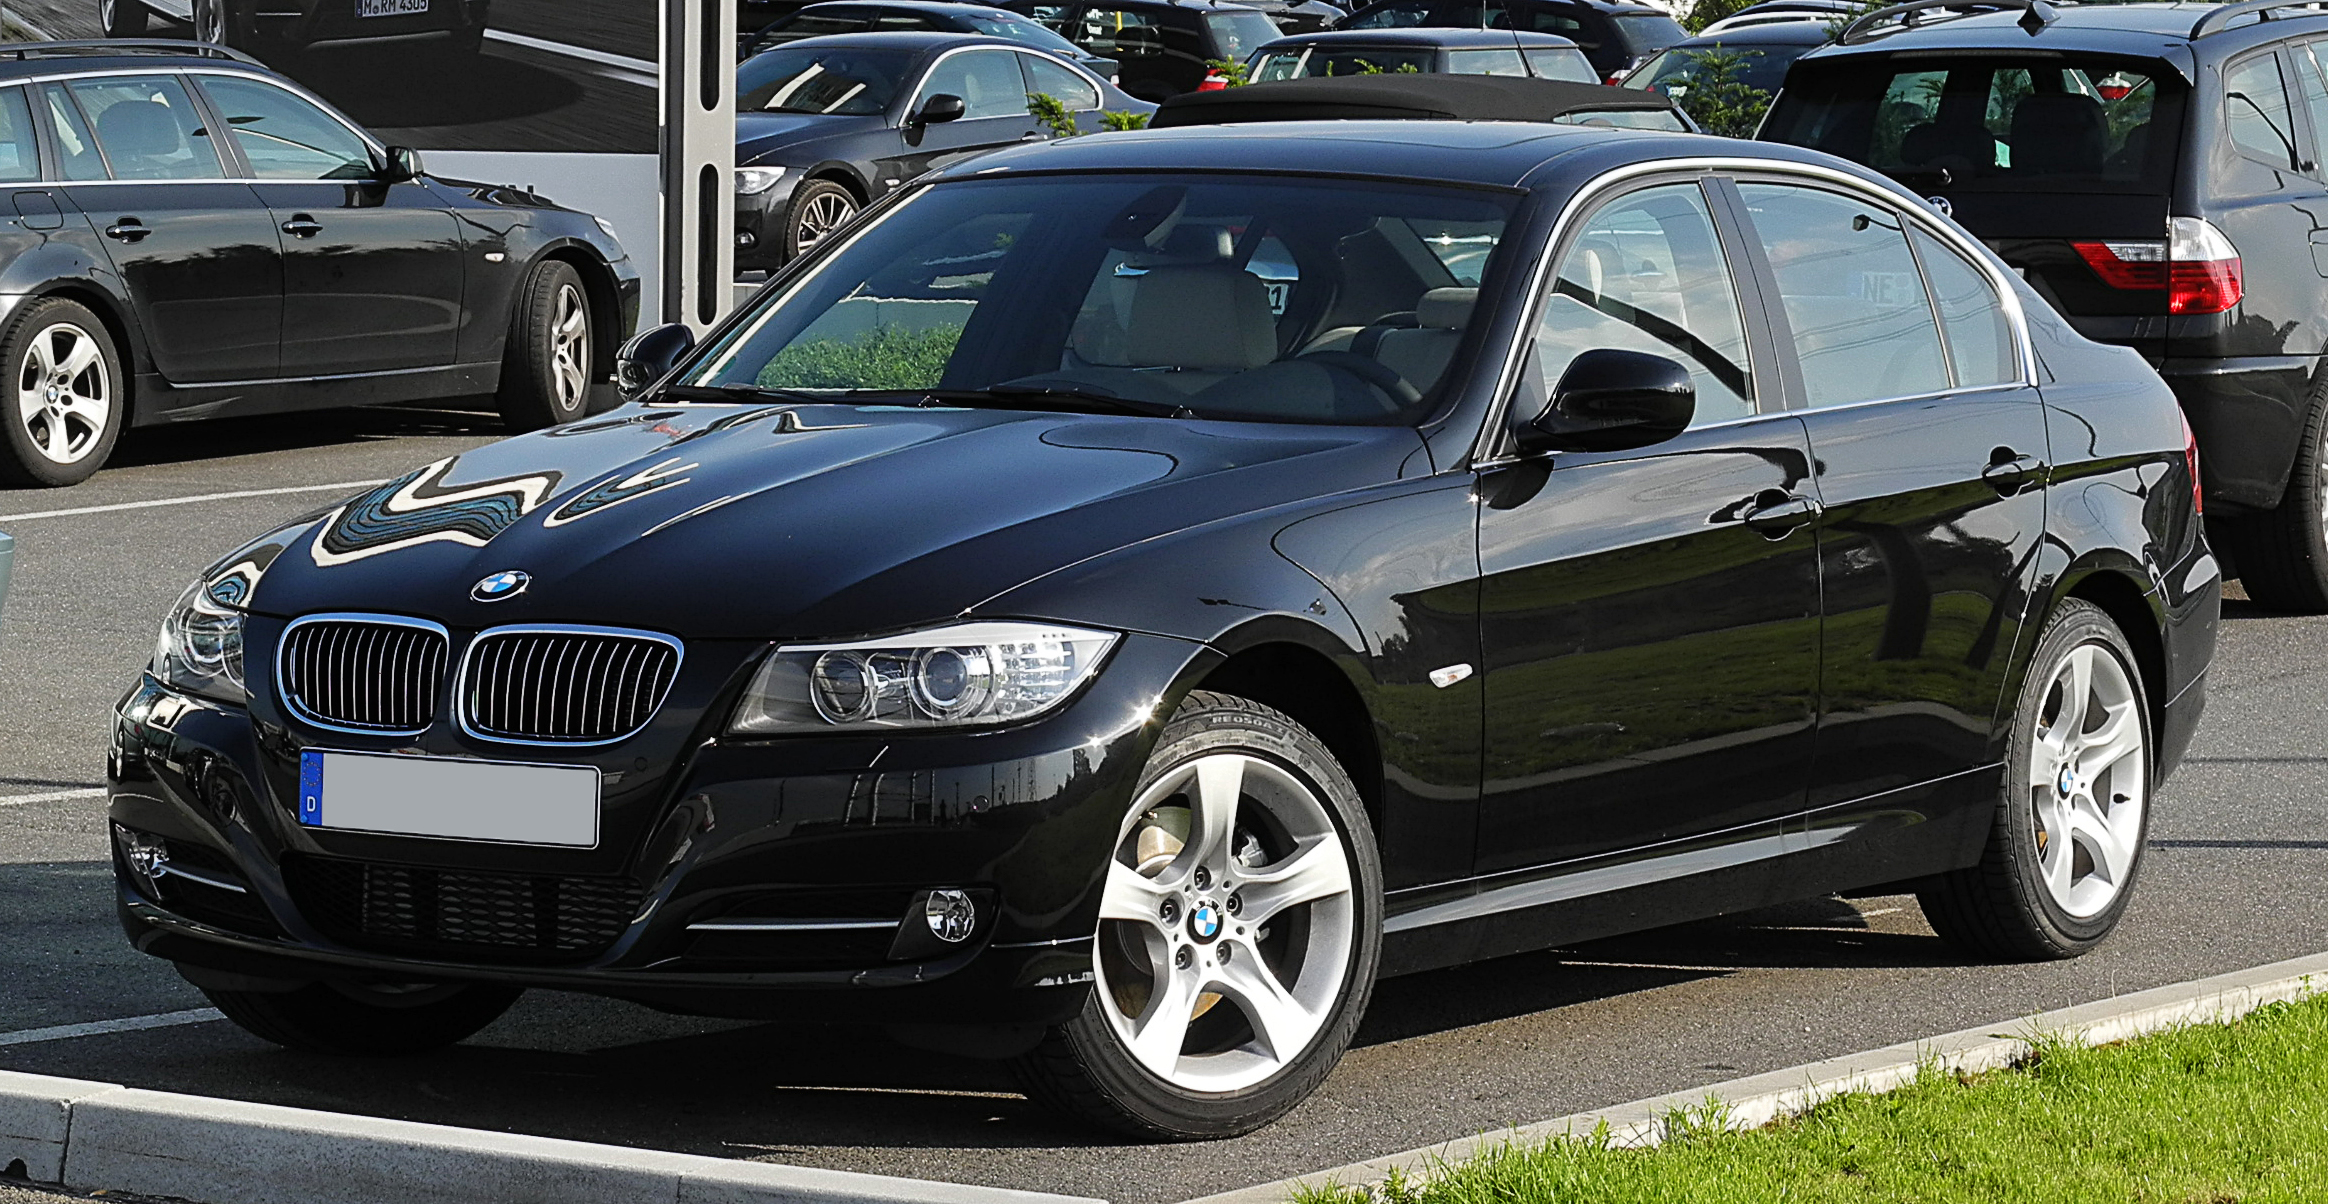 bmw 320d e90 facelift review wroc awski informator internetowy wroc aw wroclaw hotele wroc. Black Bedroom Furniture Sets. Home Design Ideas